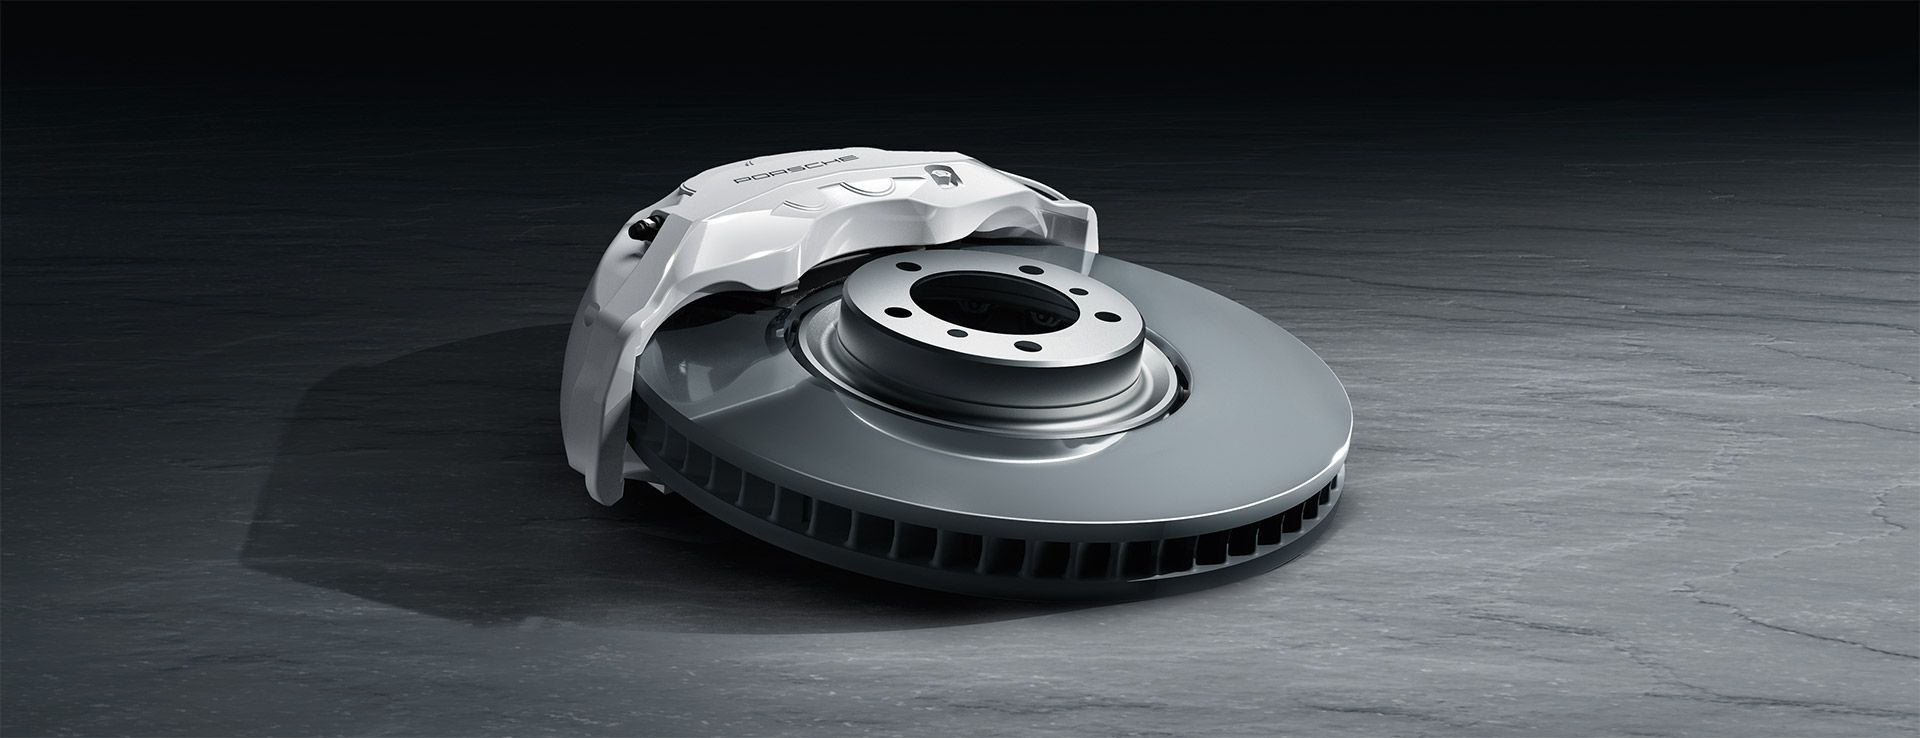 Freio com revestimento de carboneto de tungstênio -   Porsche Surface Coated Brake PSCB